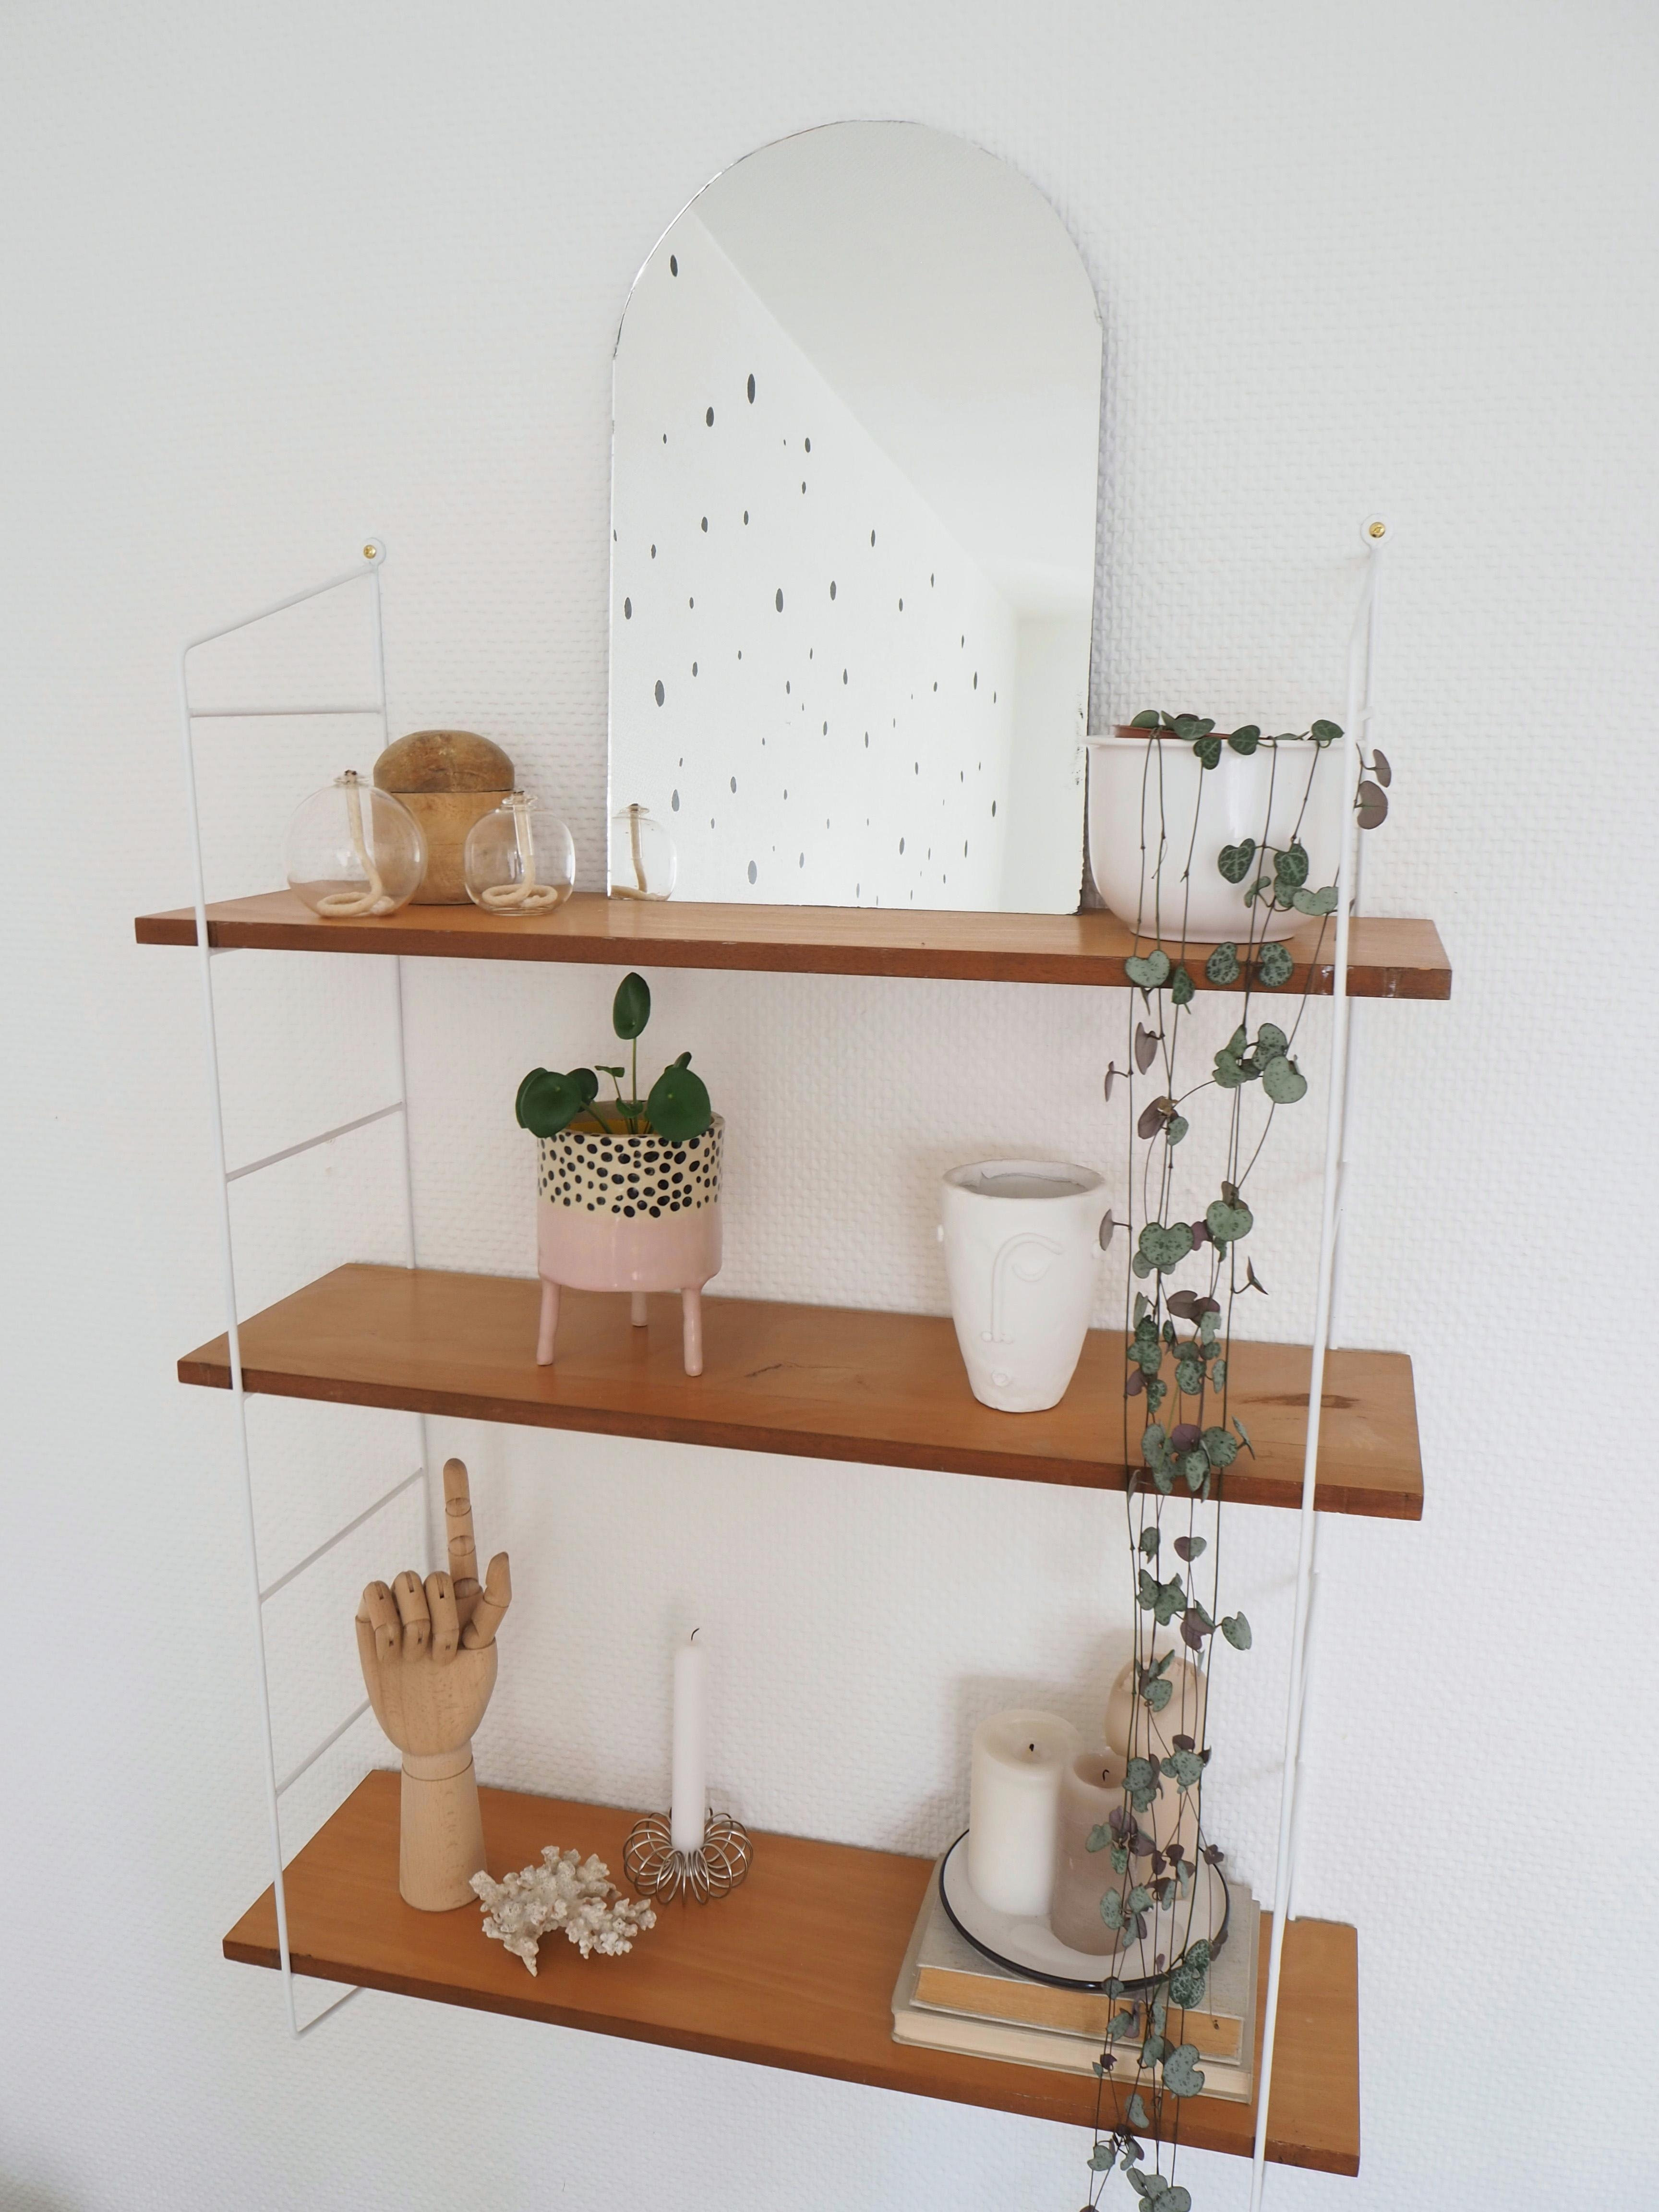 #stringregal #regaldekoration #spiegel #planter #diy #kerzen #regal #shelfie #pilea